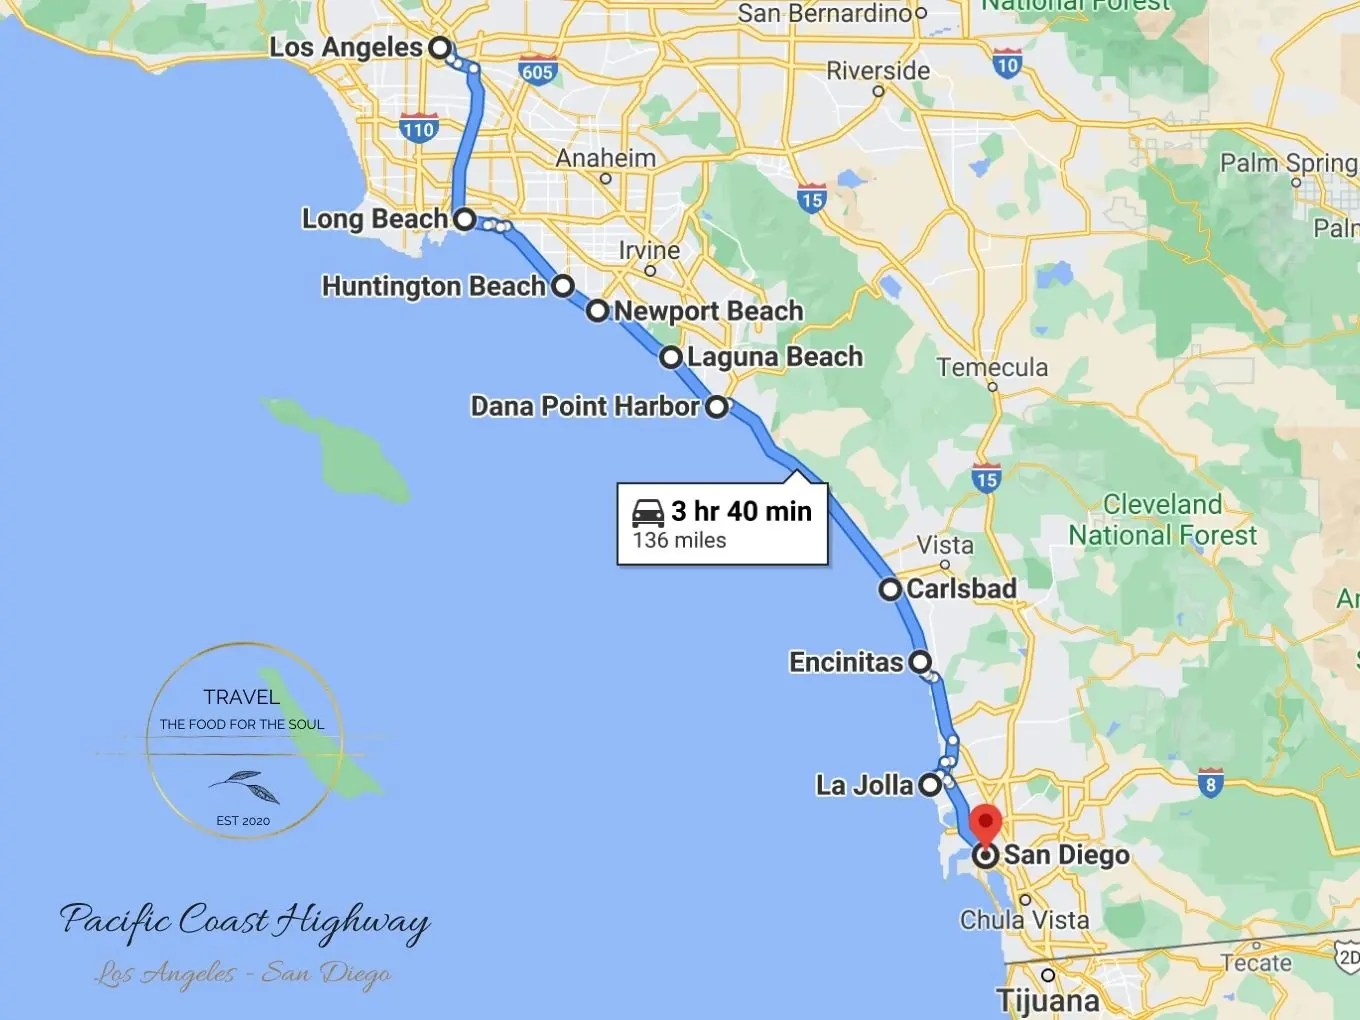 Pacific Coast Highway Attractions Map | Los Angeles To San Diego